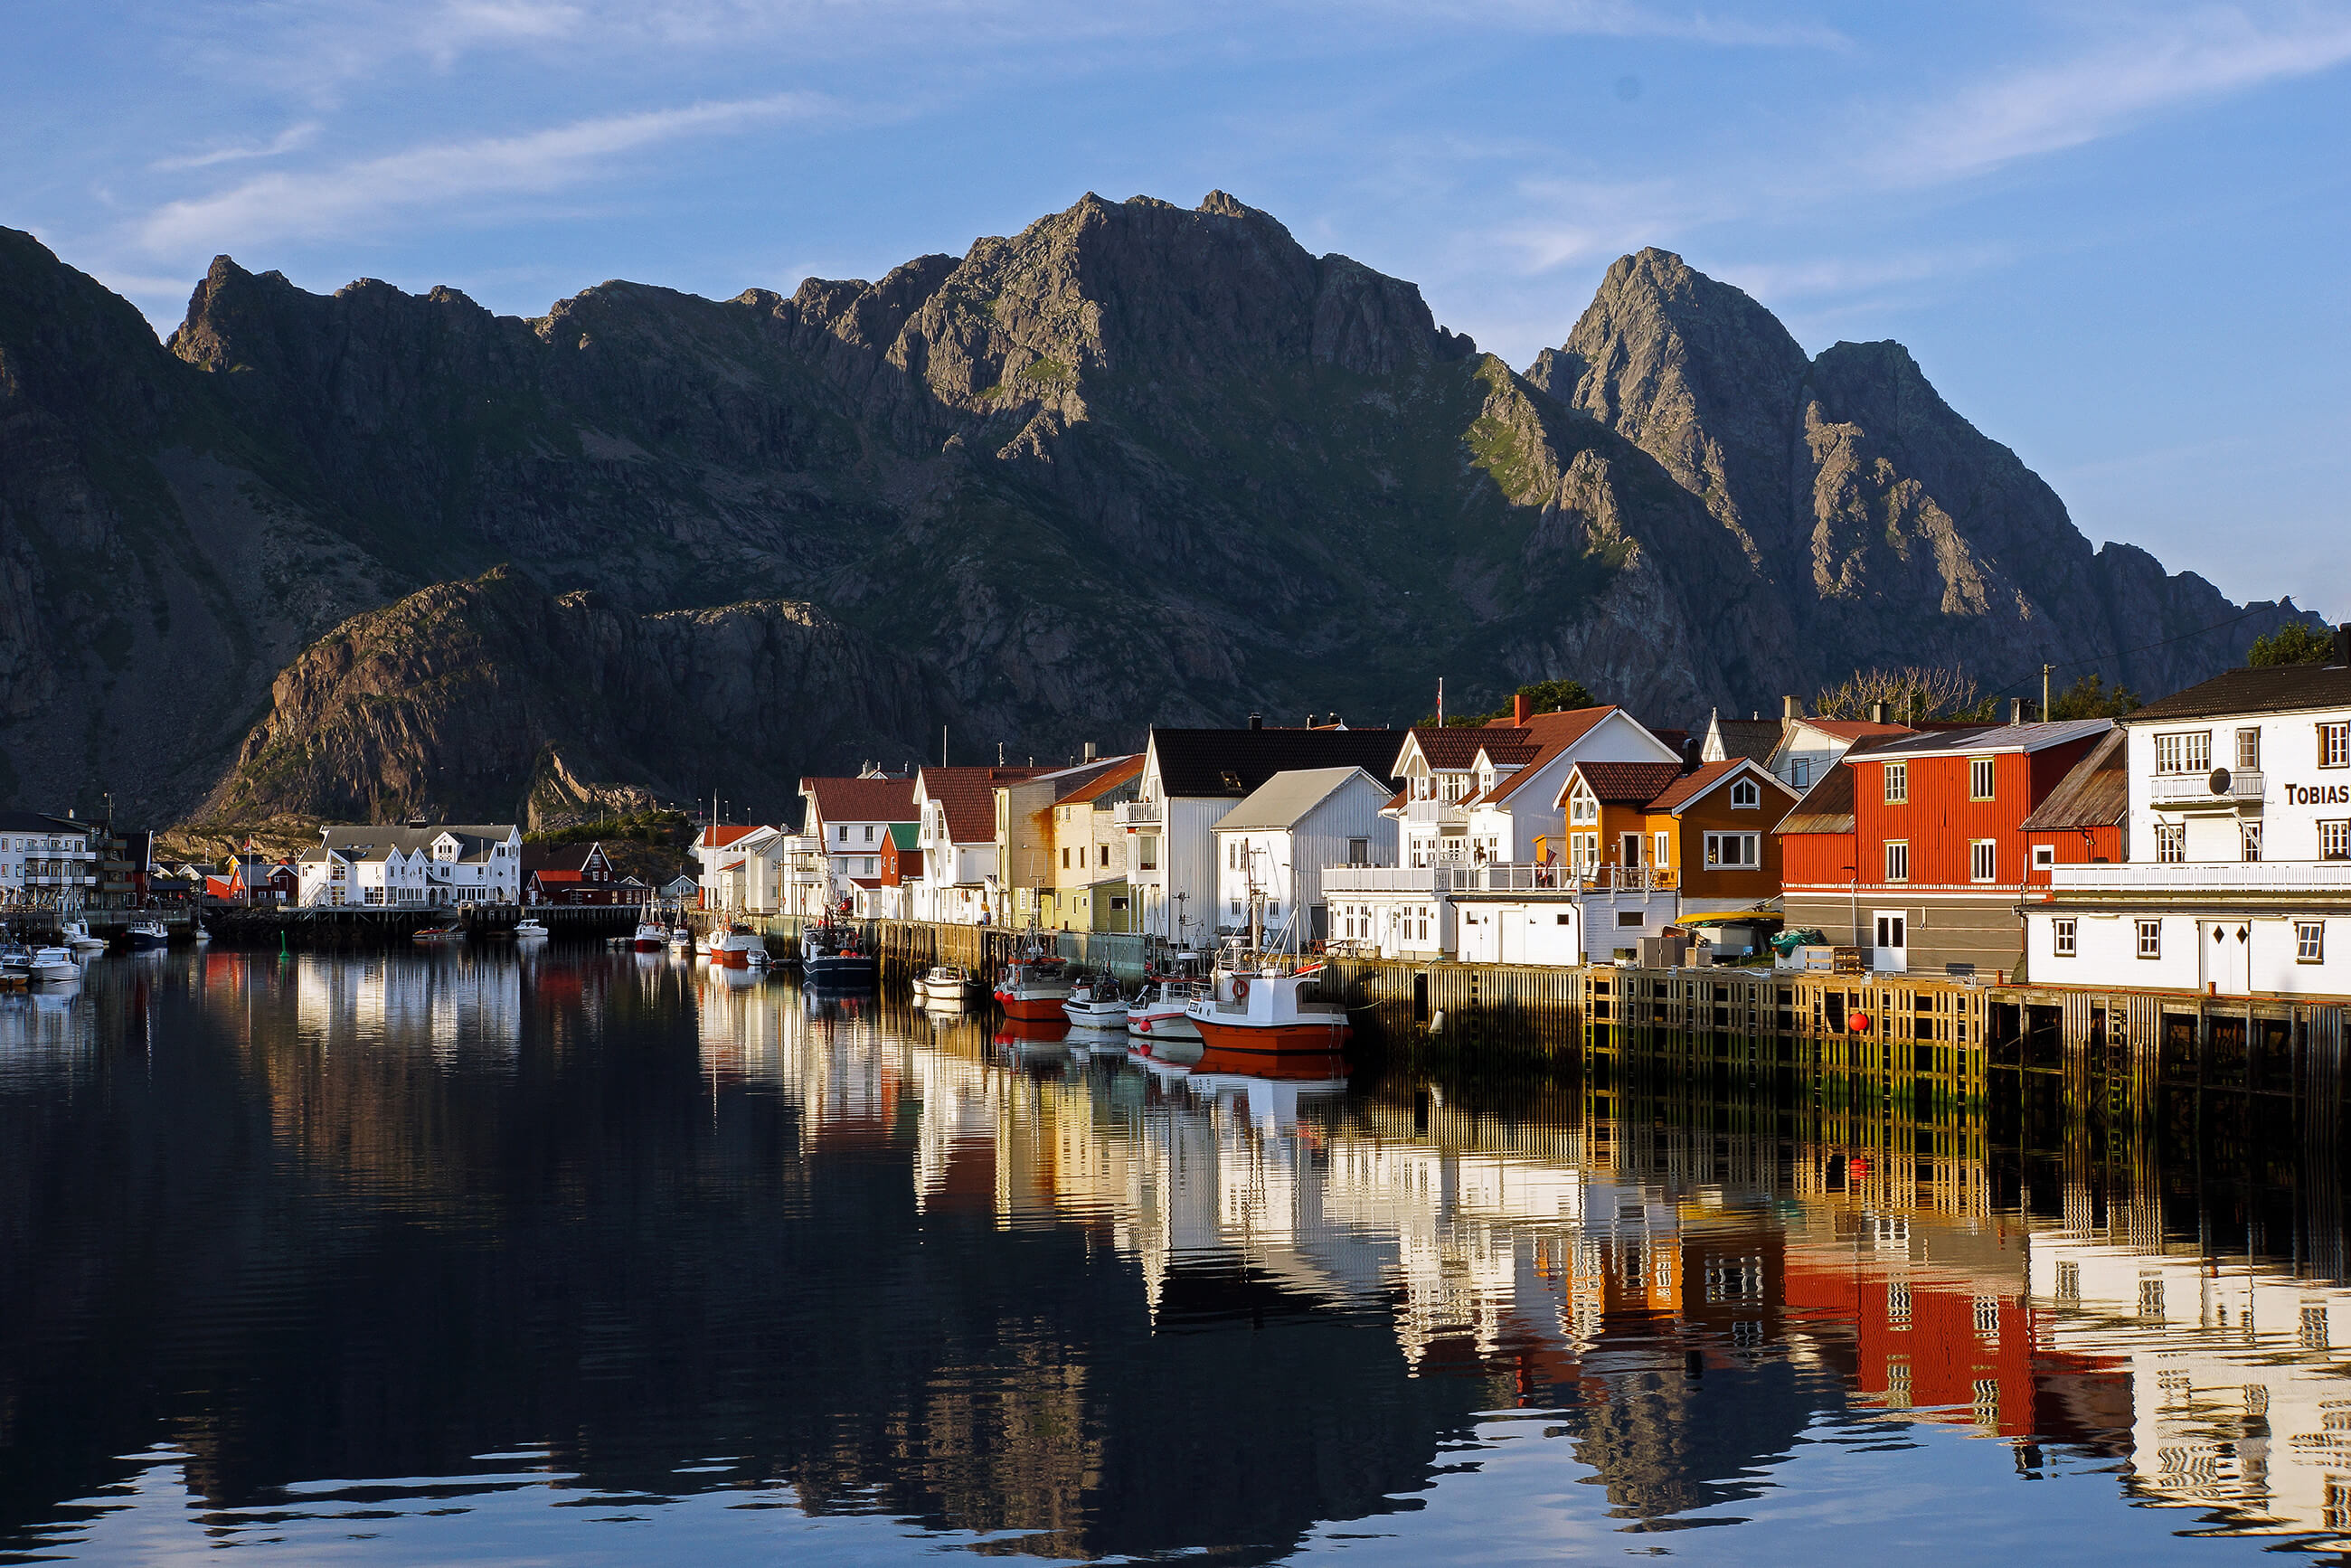 https://bubo.sk/uploads/galleries/5044/henningsvar-lofoten-norway-hgr-102615--photo_photo_competition.jpg